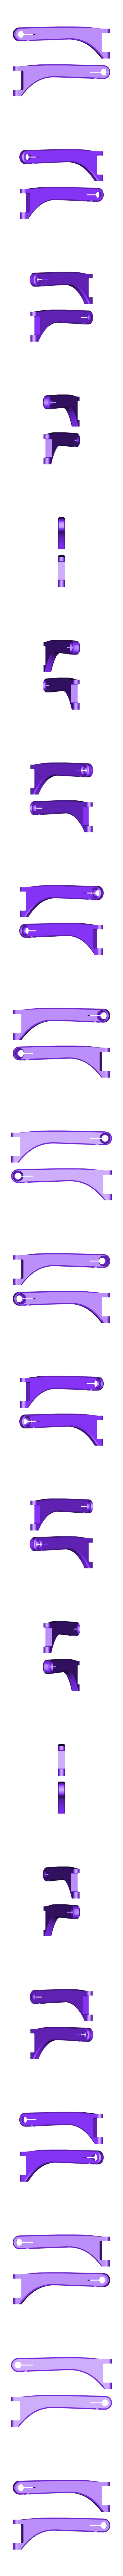 Armfront02.stl Download free STL file Lynx - Fully 3D-printable 1/10 4wd buggy • Object to 3D print, tahustvedt